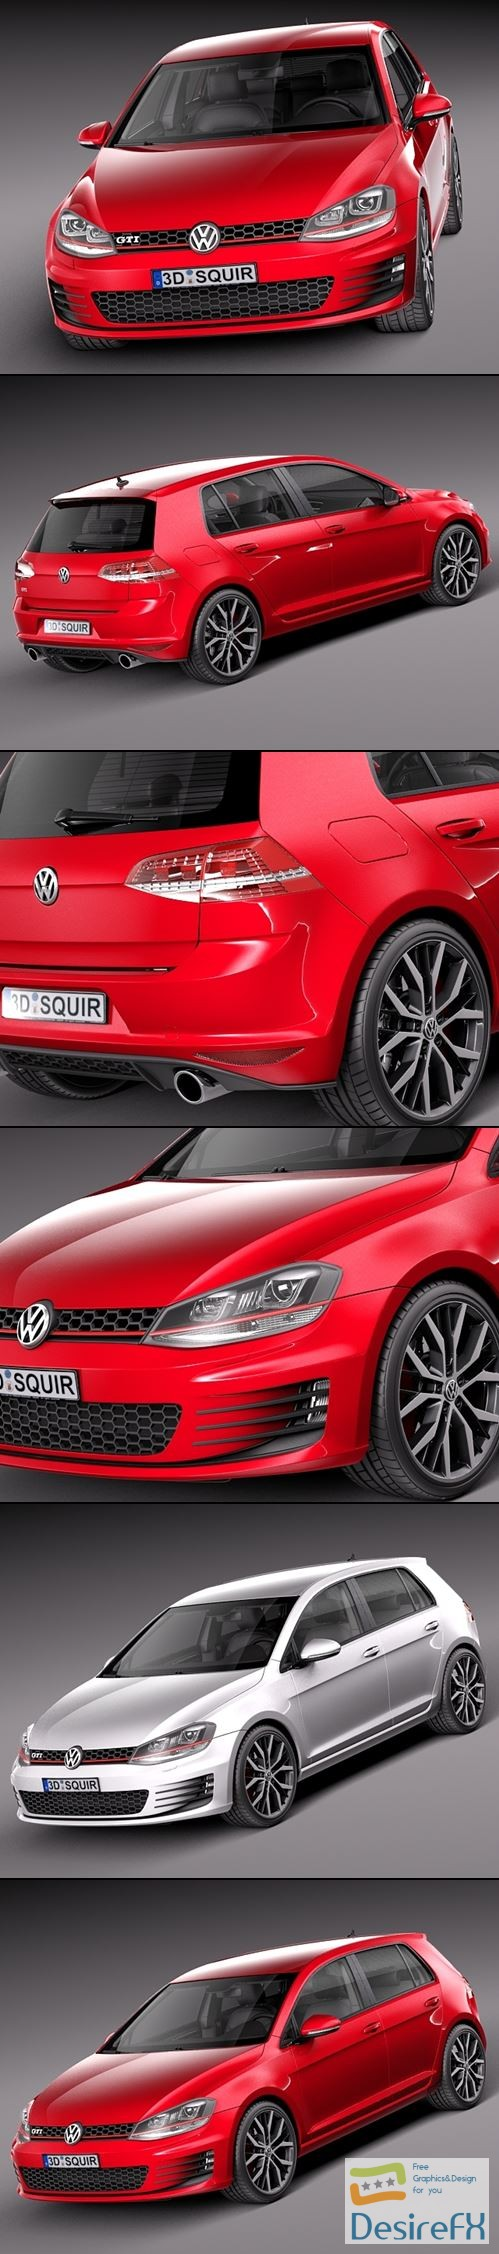 3d-models - Volkswagen Golf VII GTI 5-door 2014 3D Model